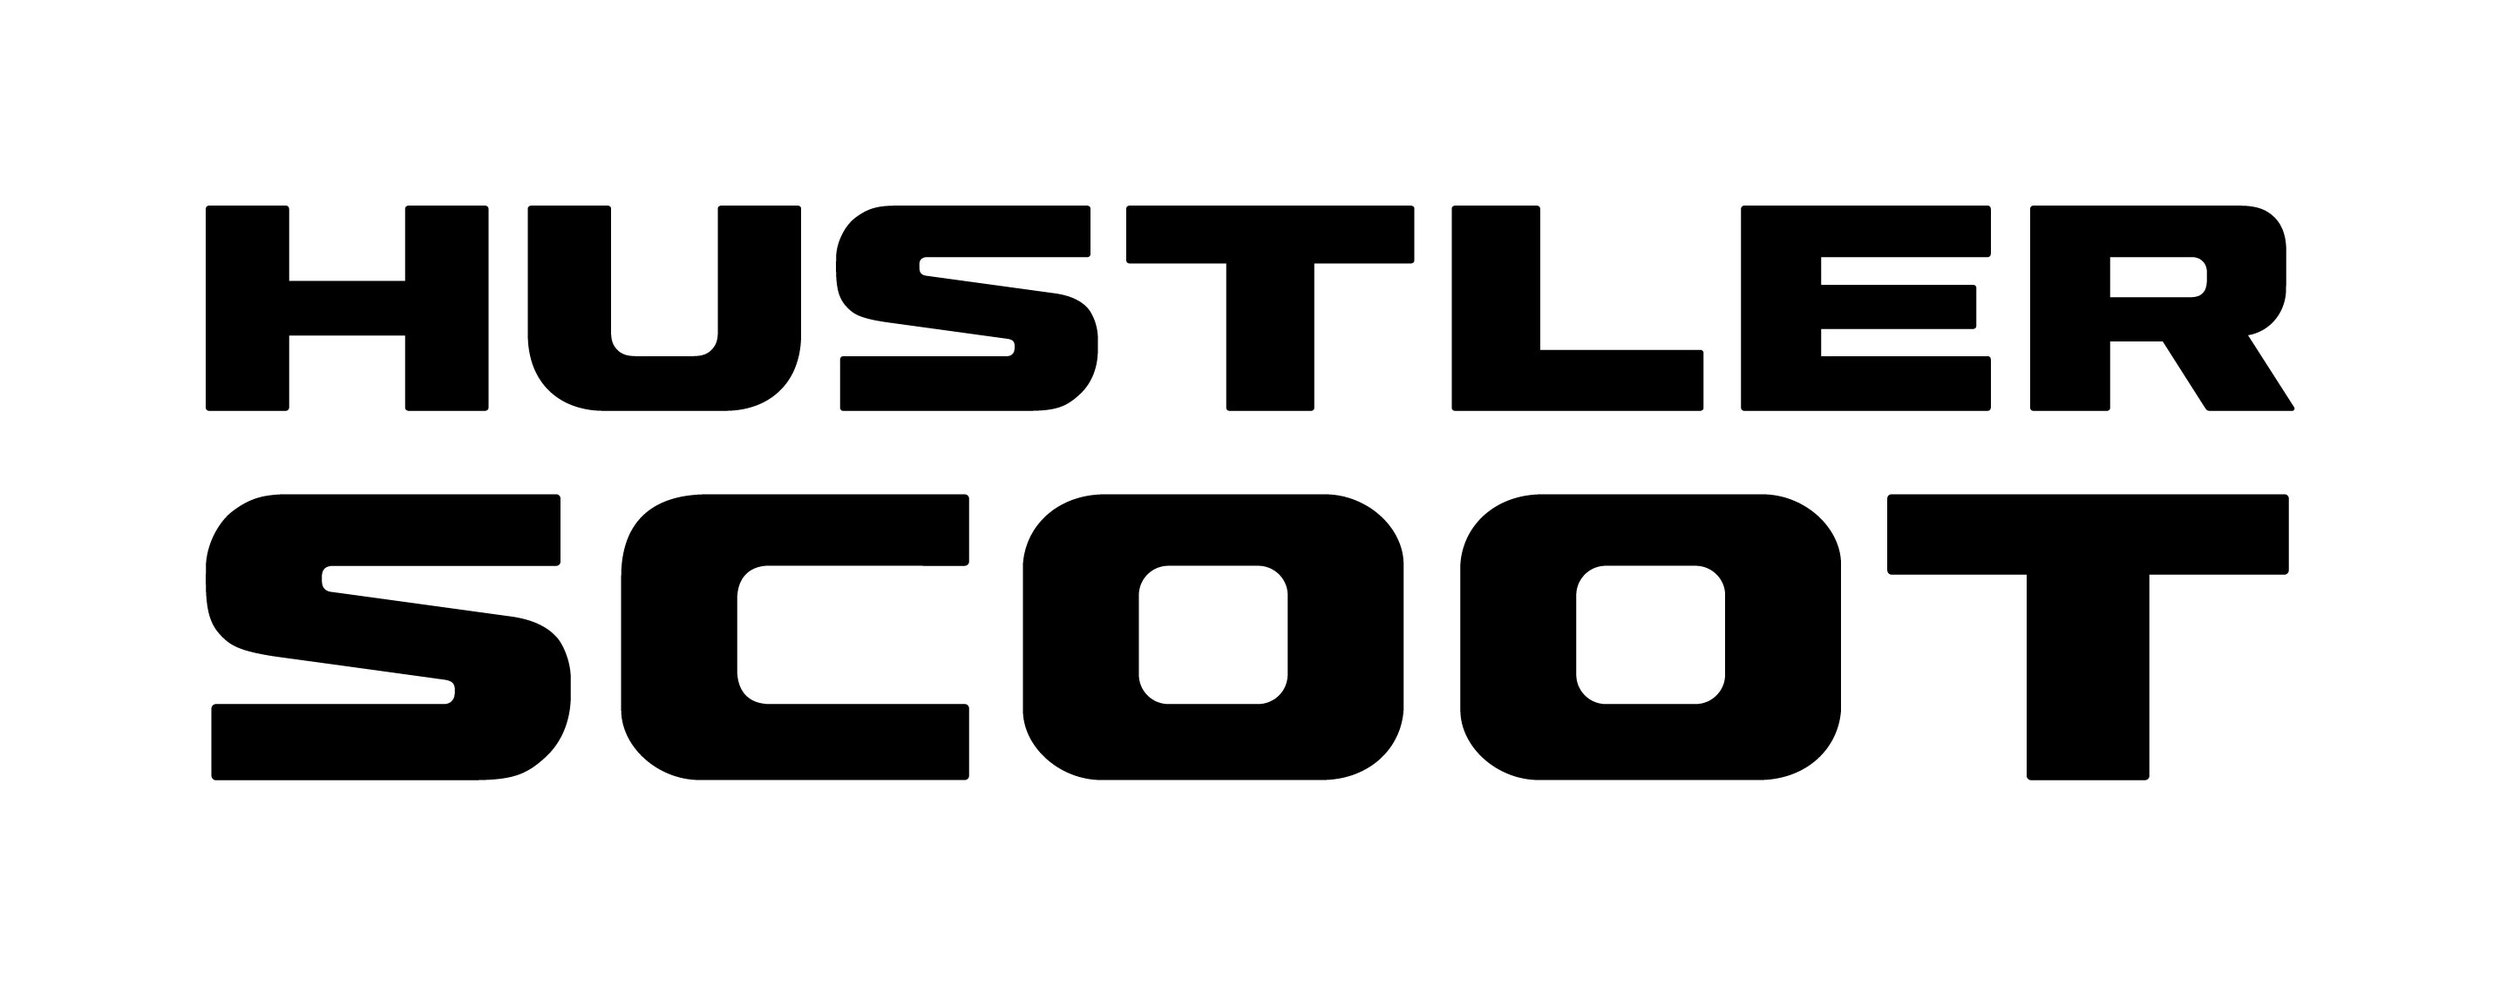 Can Pictures of hustler logos valuable message